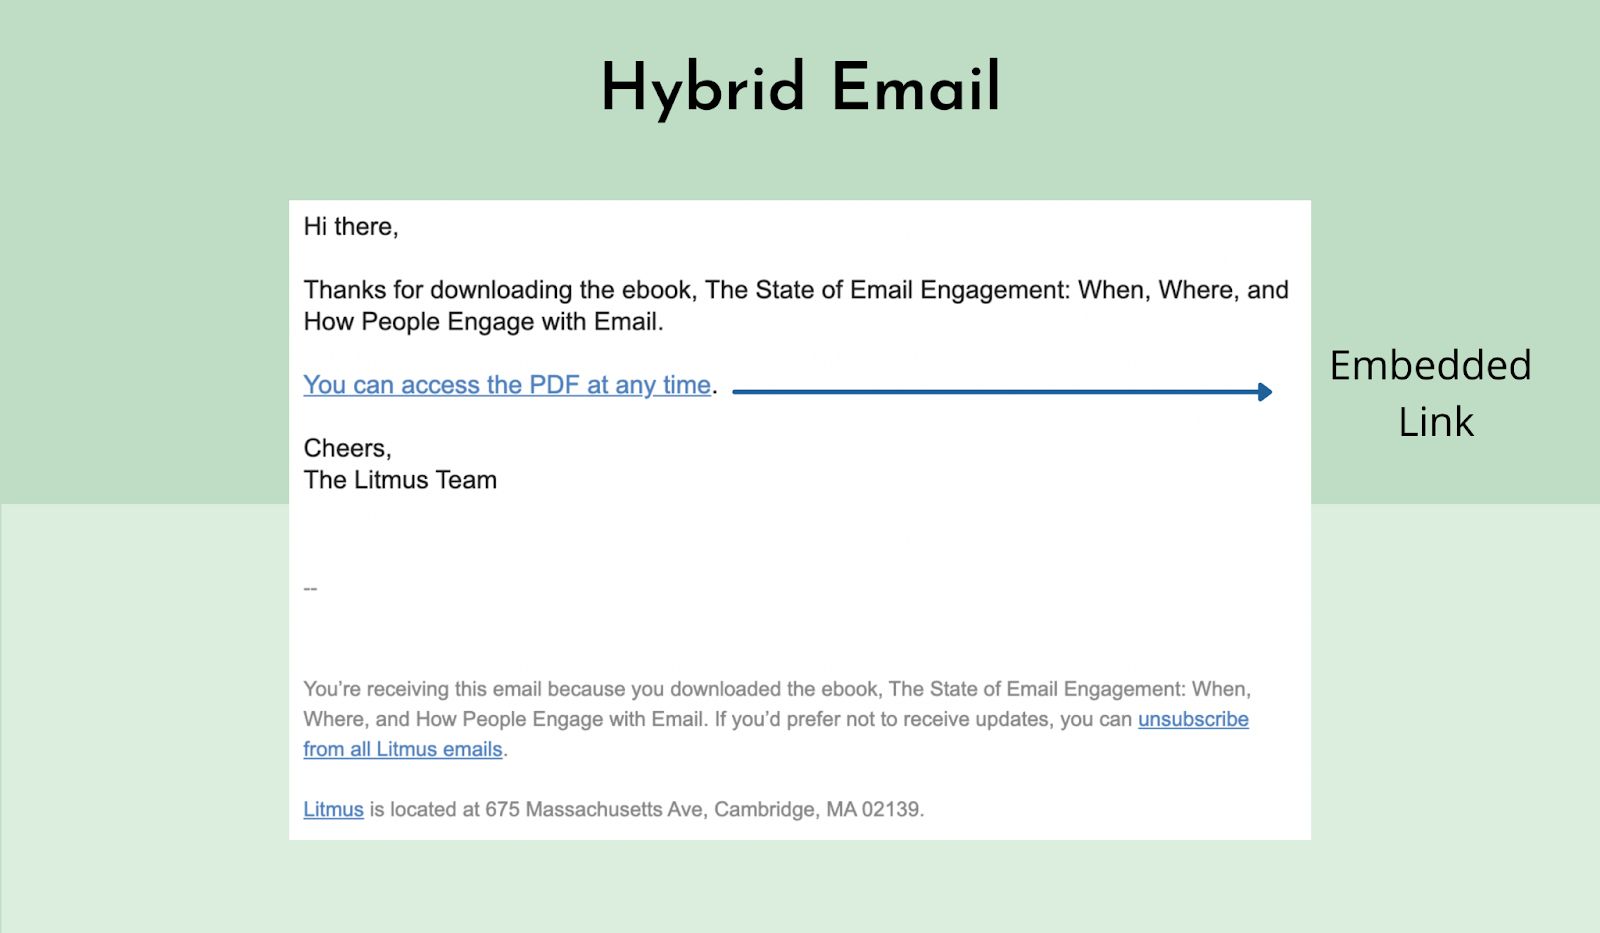 What does a Hybrid Email look like